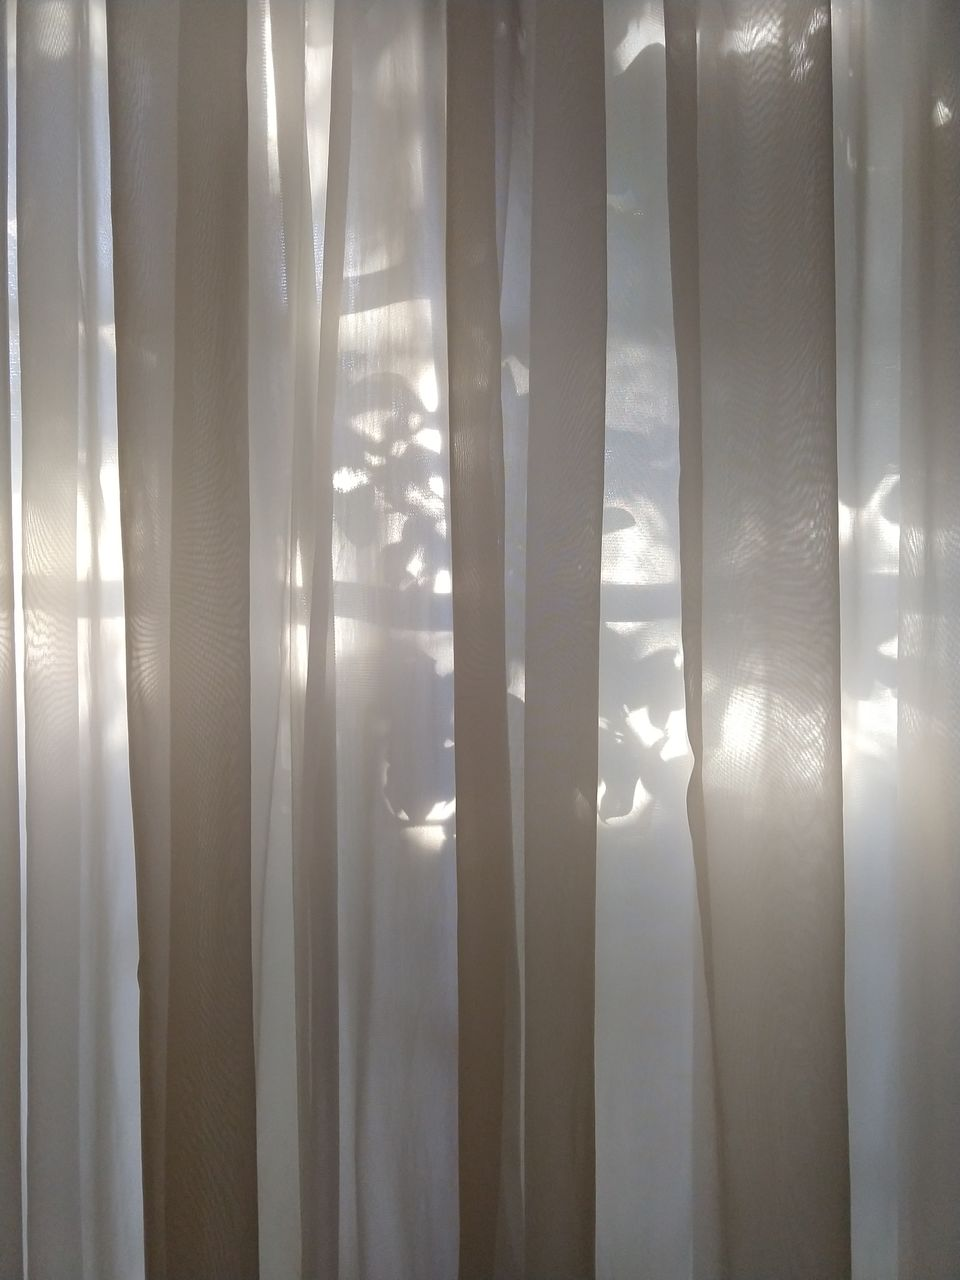 curtain, sunlight, indoors, window, no people, nature, day, textile, home interior, white color, full frame, close-up, sun, pattern, domestic room, backgrounds, shadow, lens flare, sunbeam, streaming